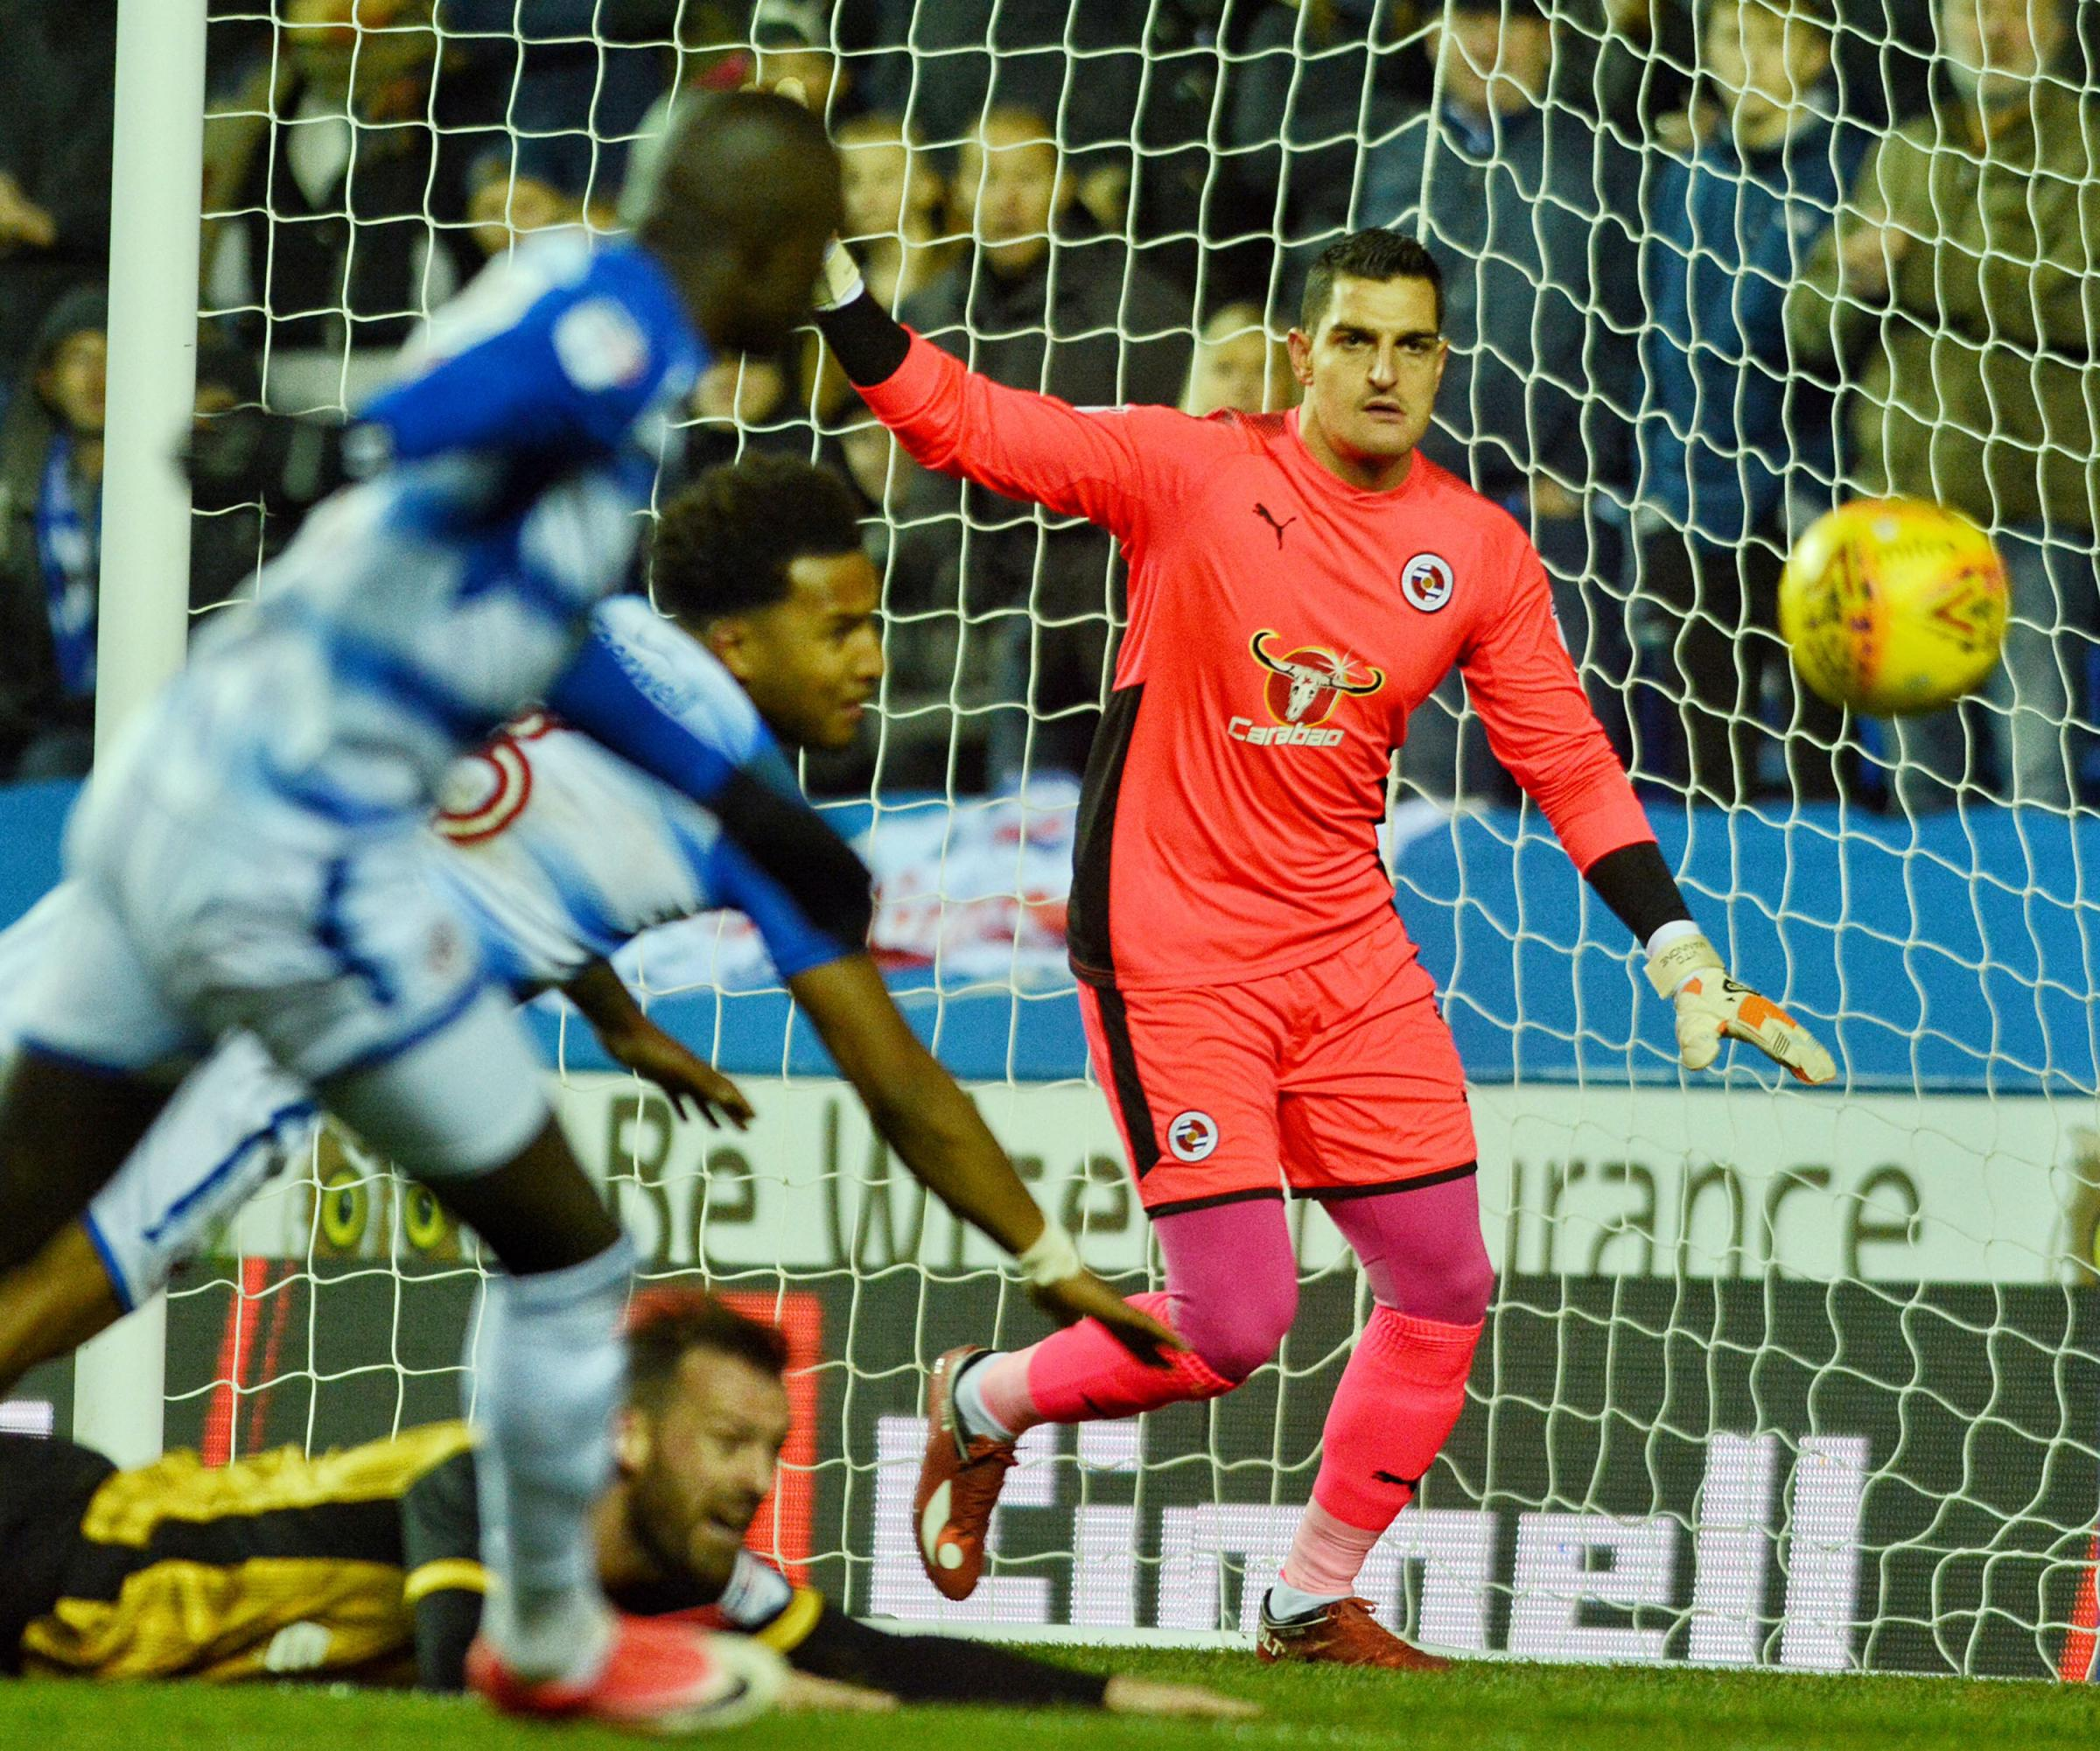 Vito Mannone gets ready to clear the danger during the 0-0 draw with Sheffield Wednesday.